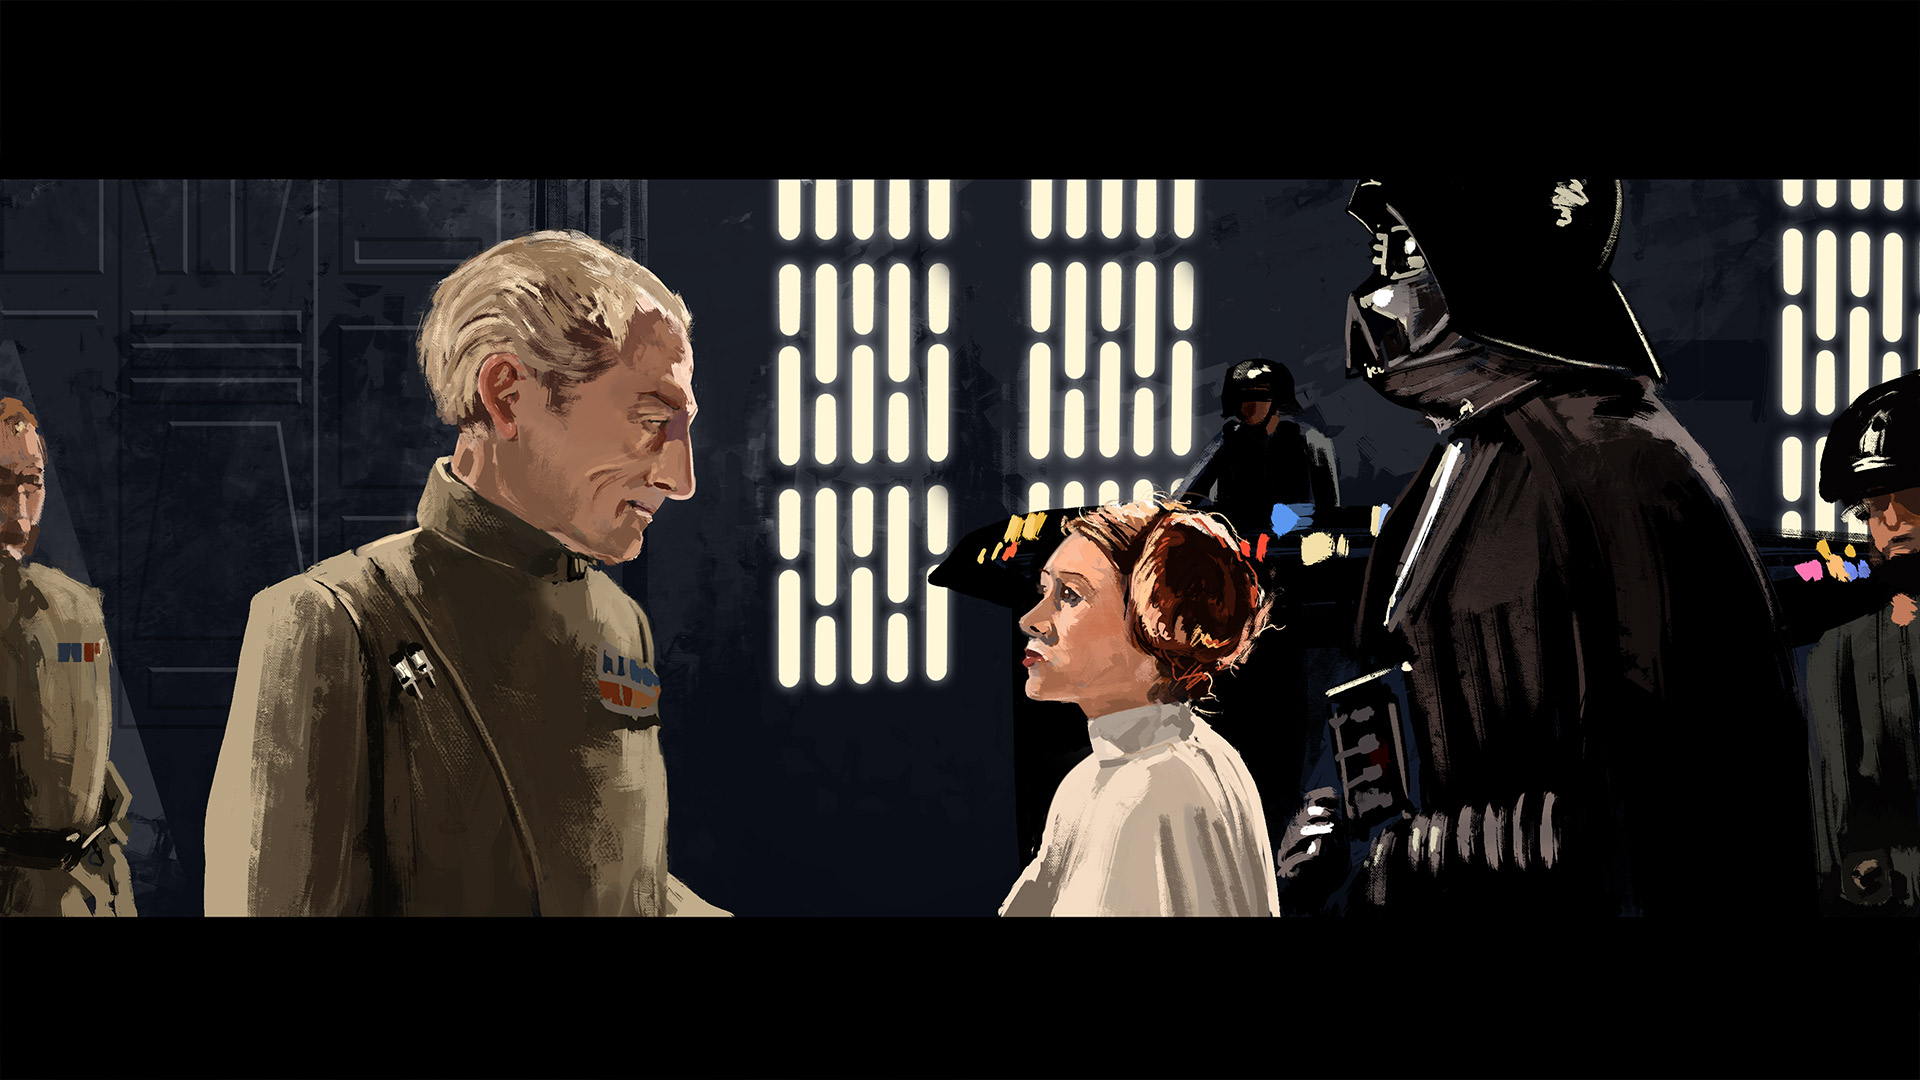 star wars digital painting